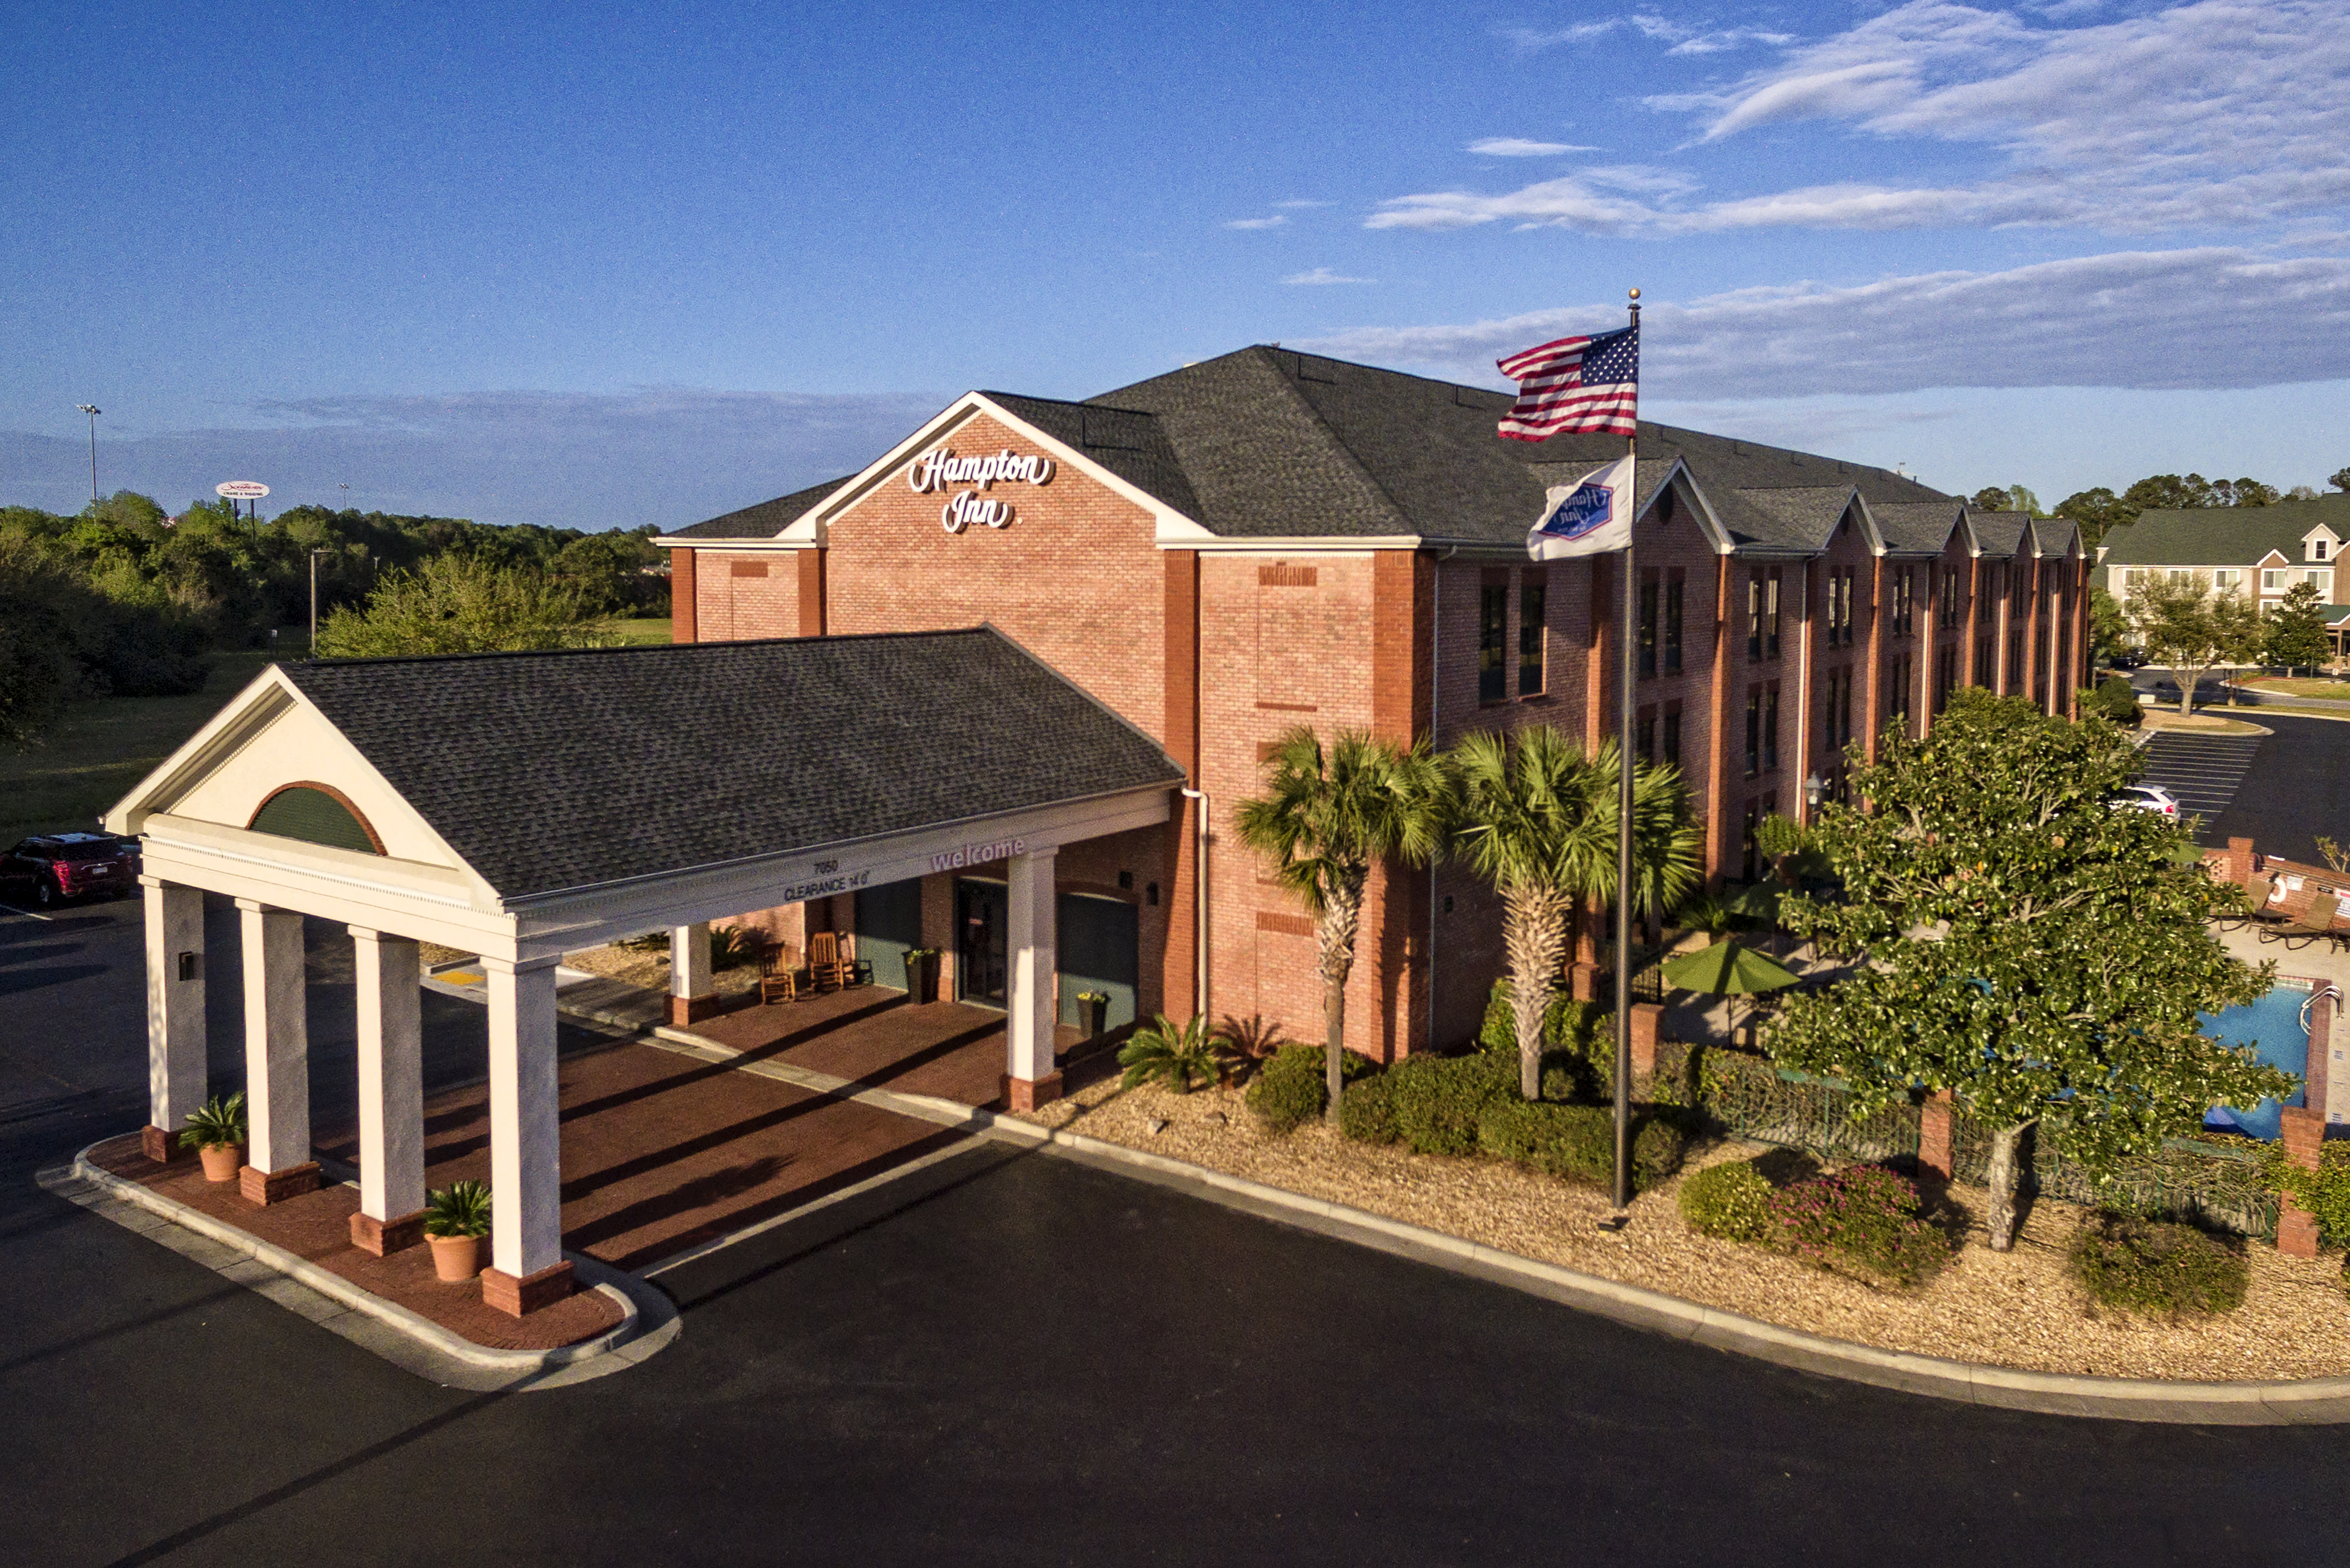 Hampton Inn hotel in Port Wentworth Georgia